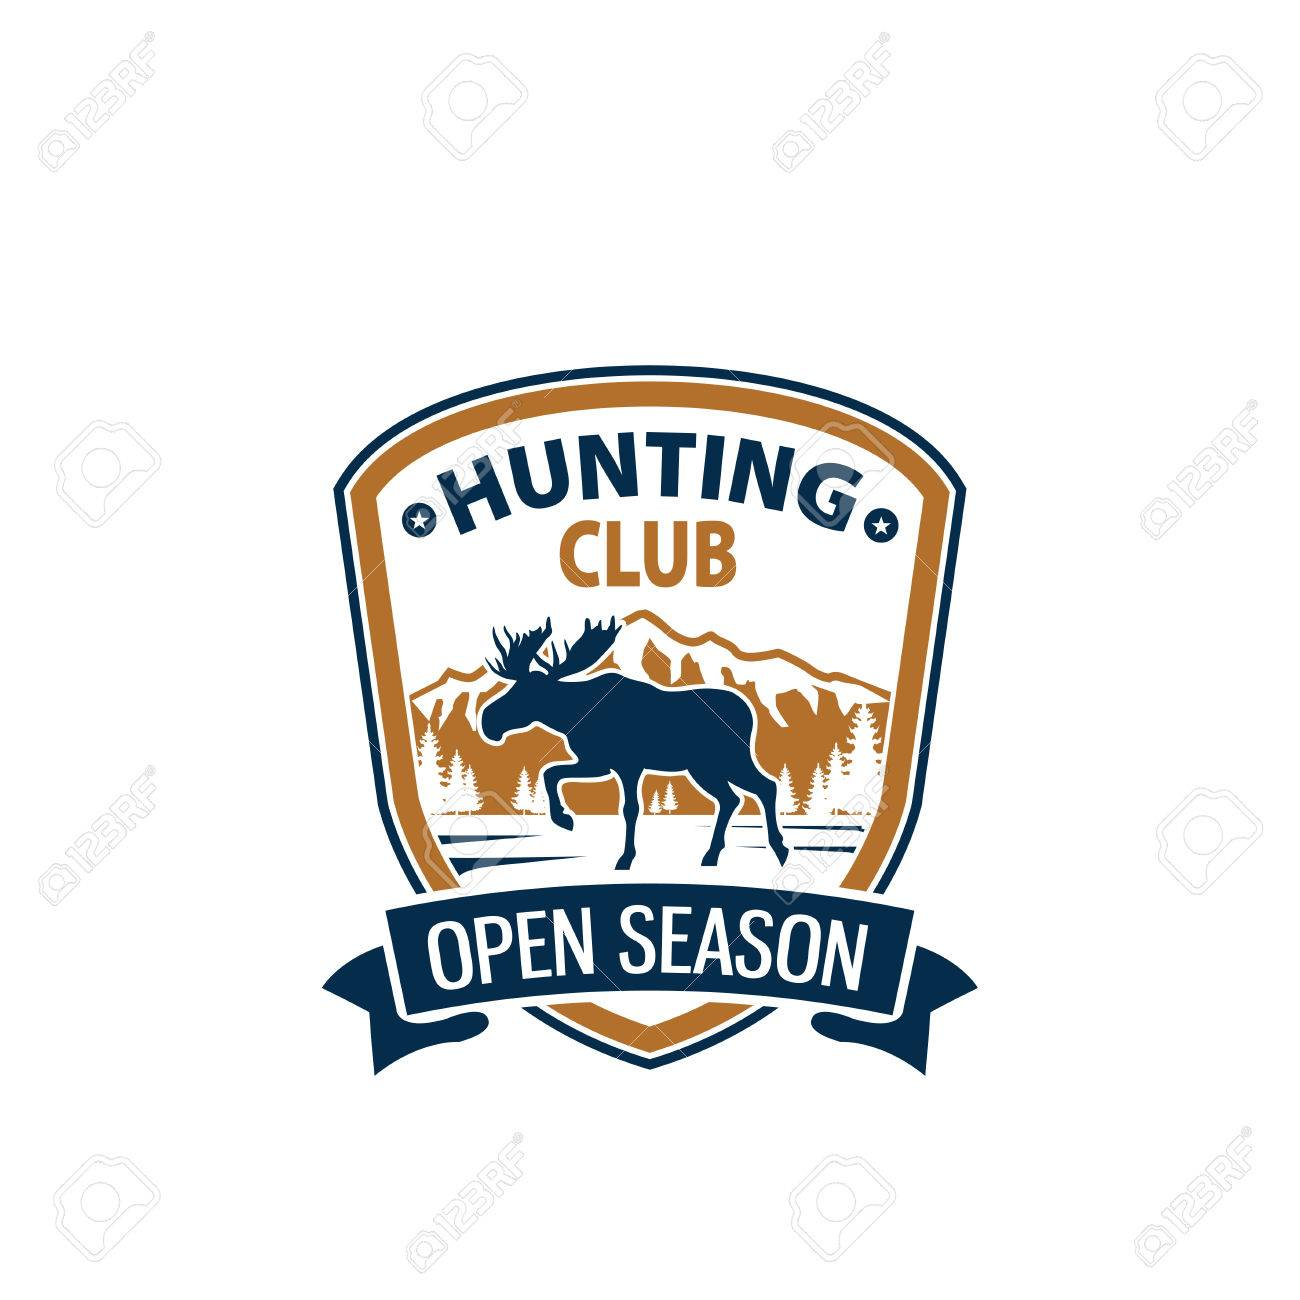 Open Season Animal Vector Icon For Hunting Club Royalty Free